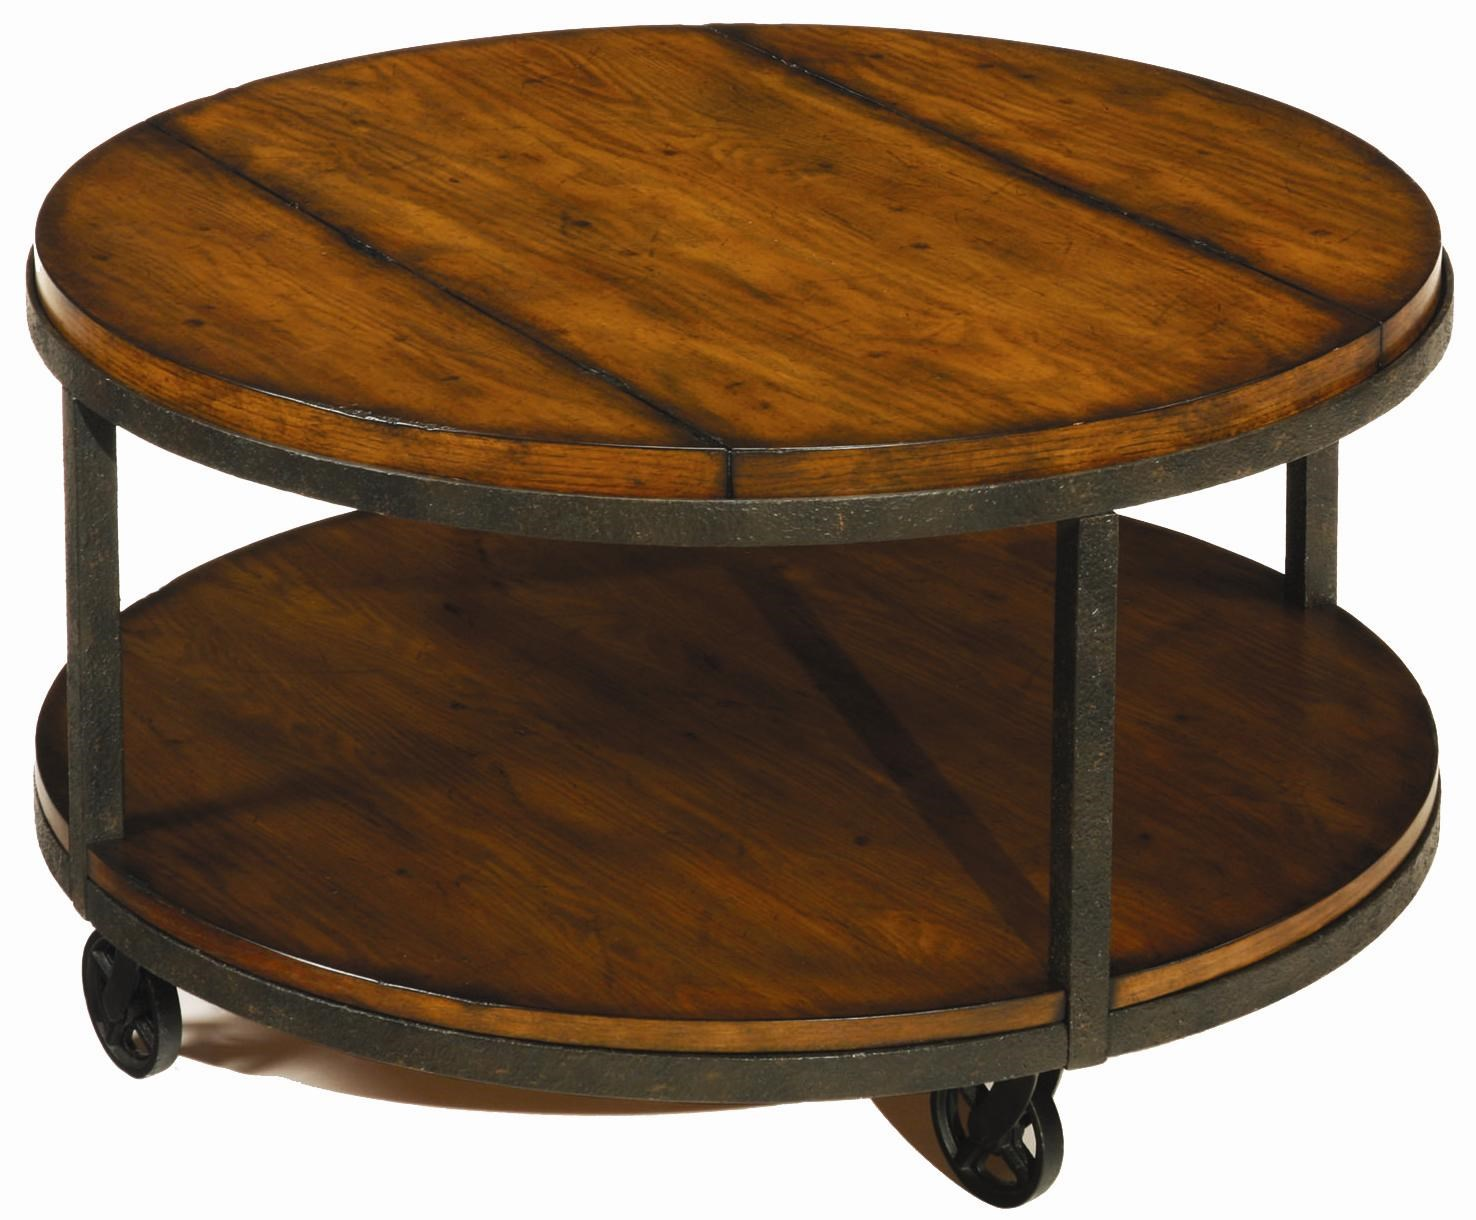 Merveilleux Hammary Baja Round Cocktail Table With Shelf And Wheels